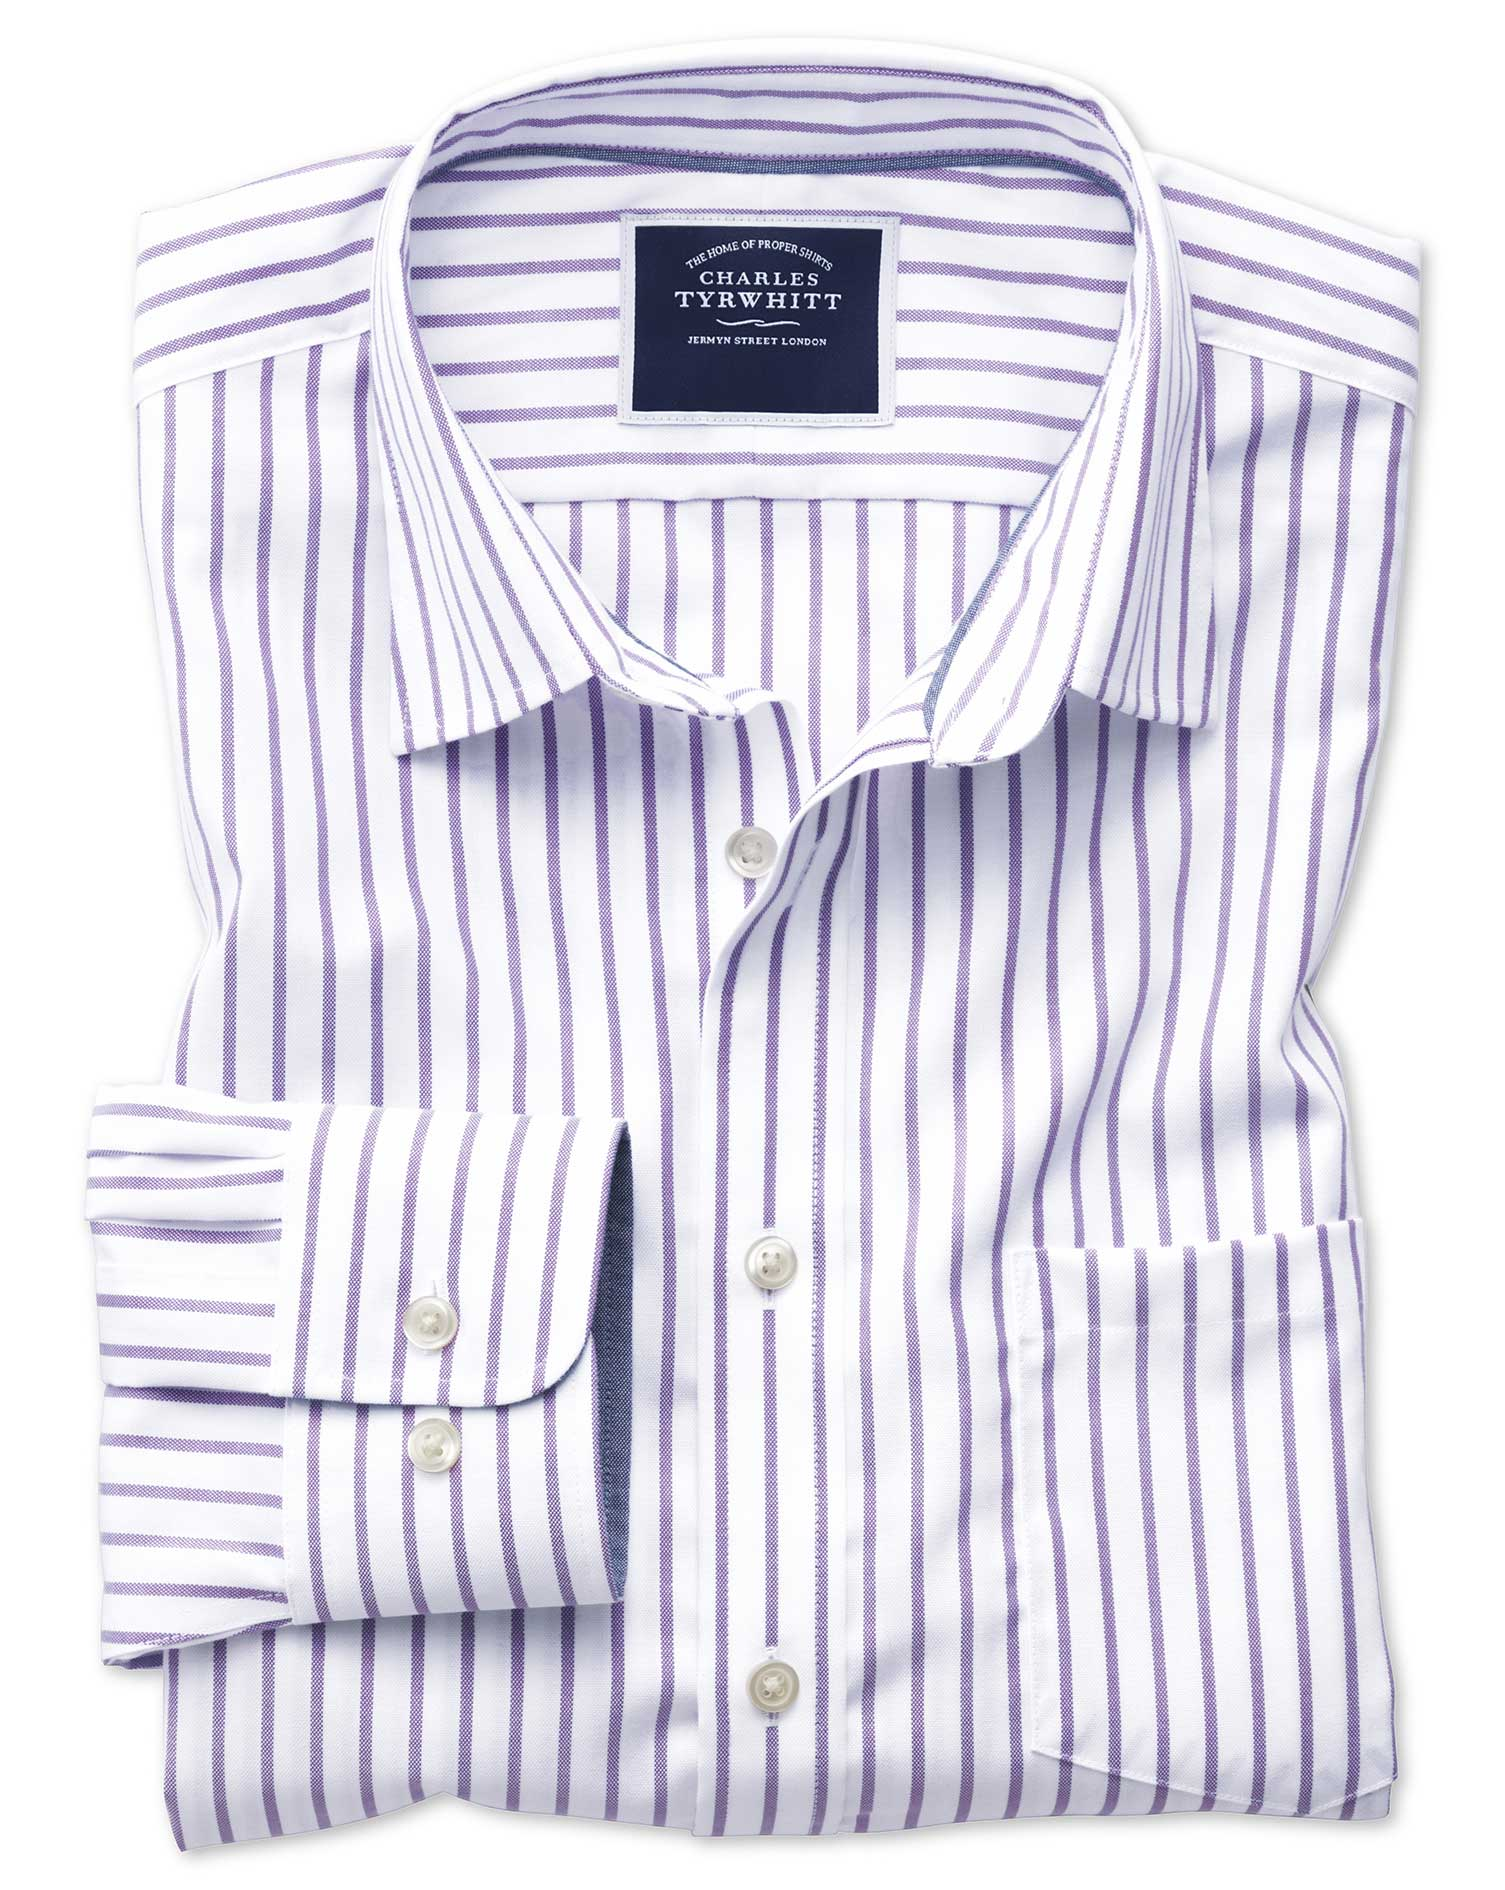 Classic Fit Non-Iron Oxford White and Lilac Stripe Cotton Shirt Single Cuff Size XL by Charles Tyrwh